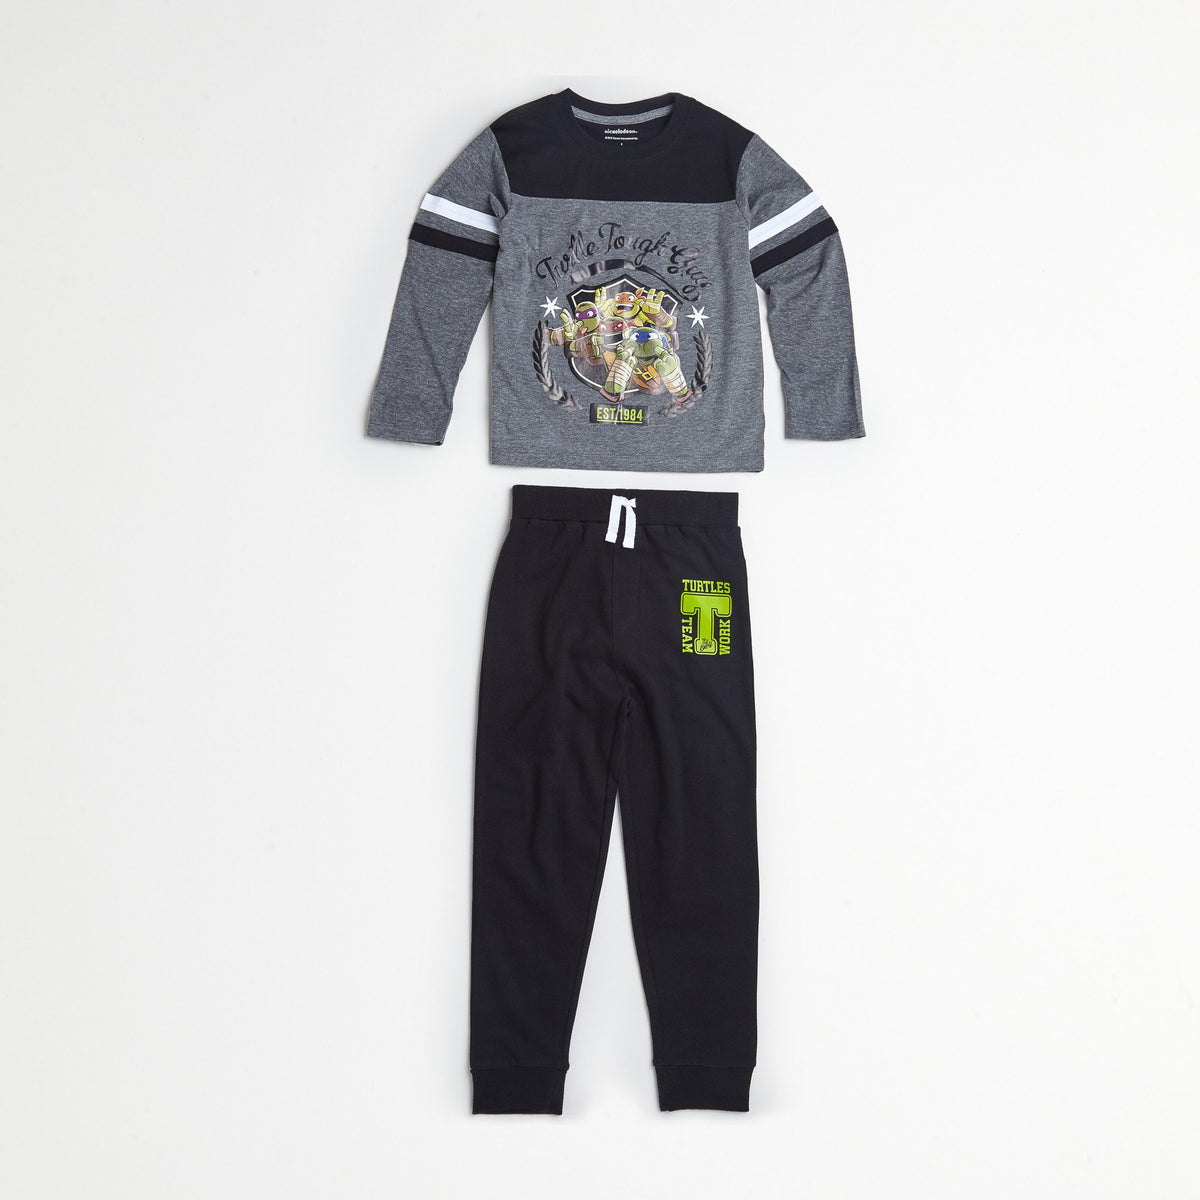 TMNT Gray/Navy Tee & Jogger Set